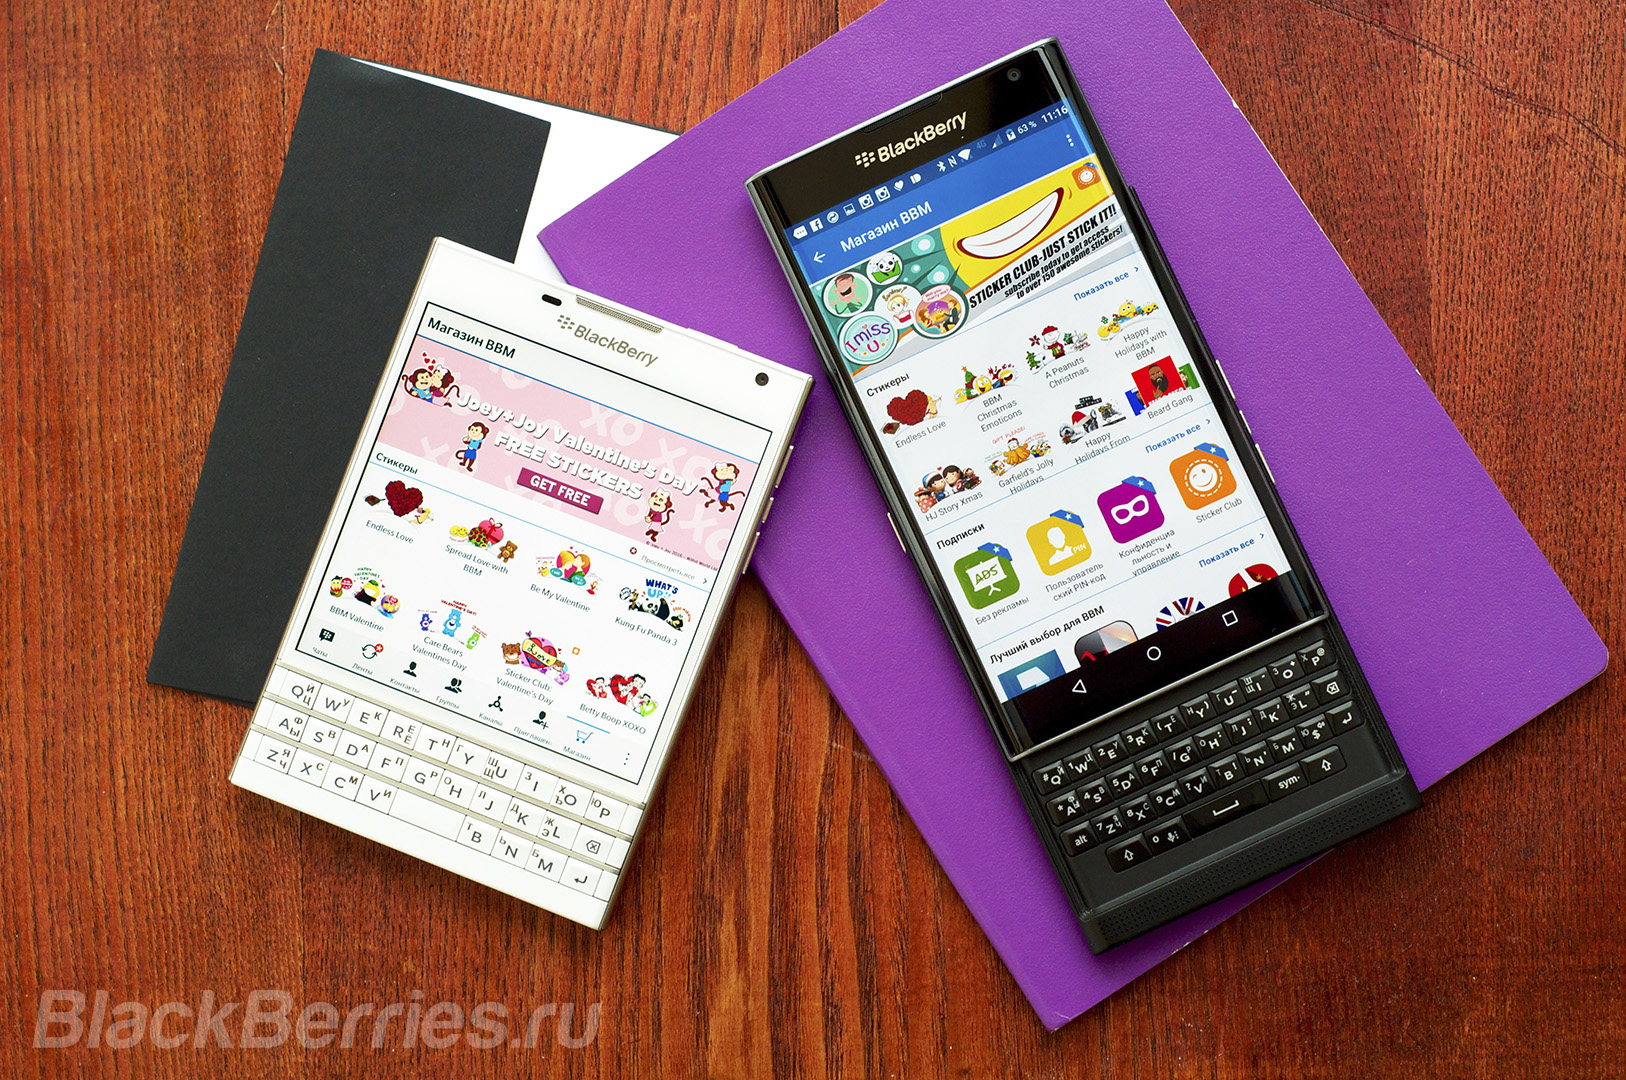 BlackBerry-BBM-Stickers